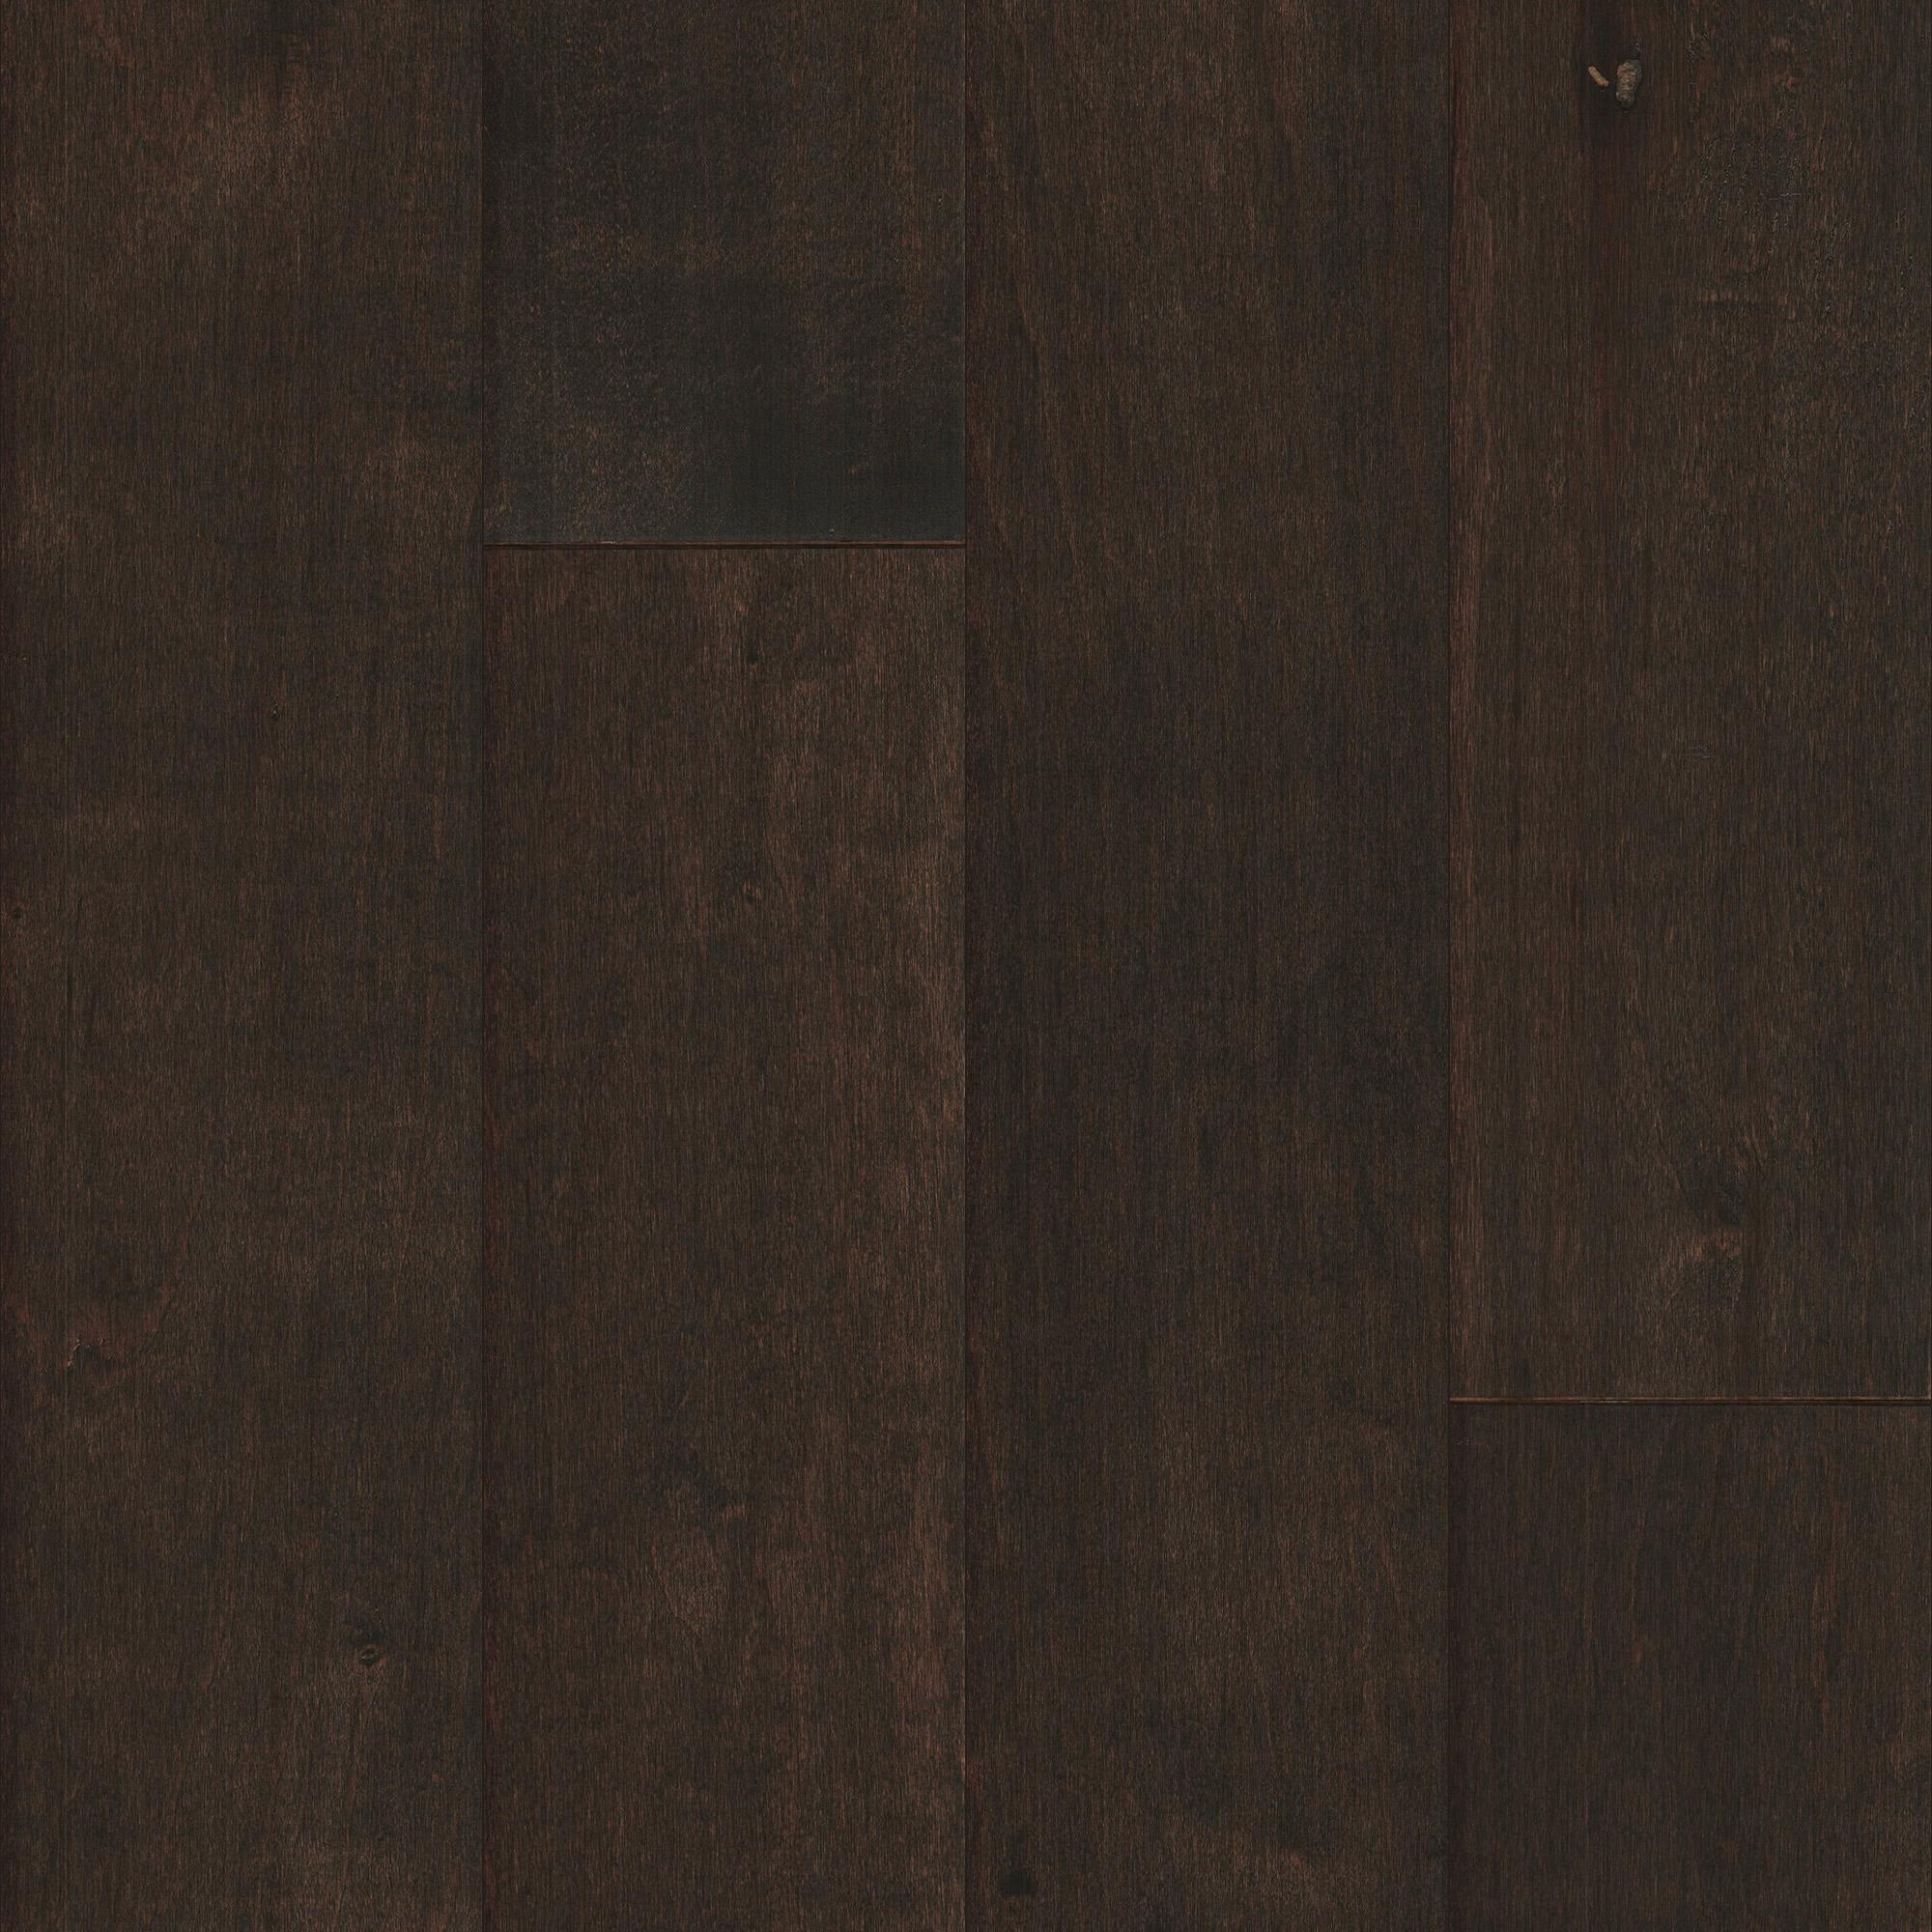 types of engineered hardwood flooring of mullican ridgecrest maple cappuccino 1 2 thick 5 wide engineered pertaining to mullican ridgecrest maple cappuccino 1 2 thick 5 wide engineered hardwood flooring